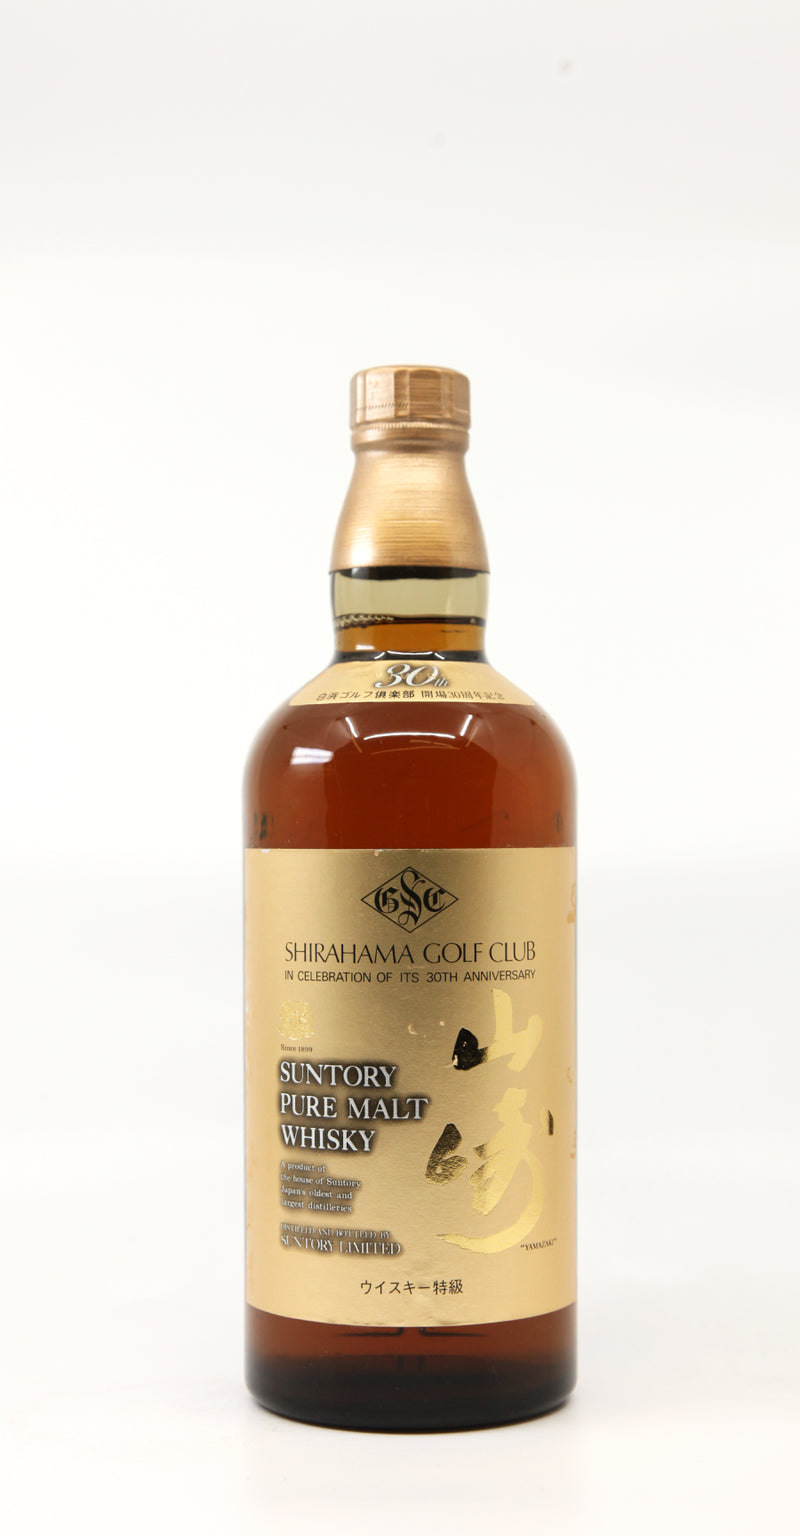 SUNTORY YAMAZAKI PURE MALT SHIRAHAMA GOLF CLUB 30TH ANNIVERSARY 70CL